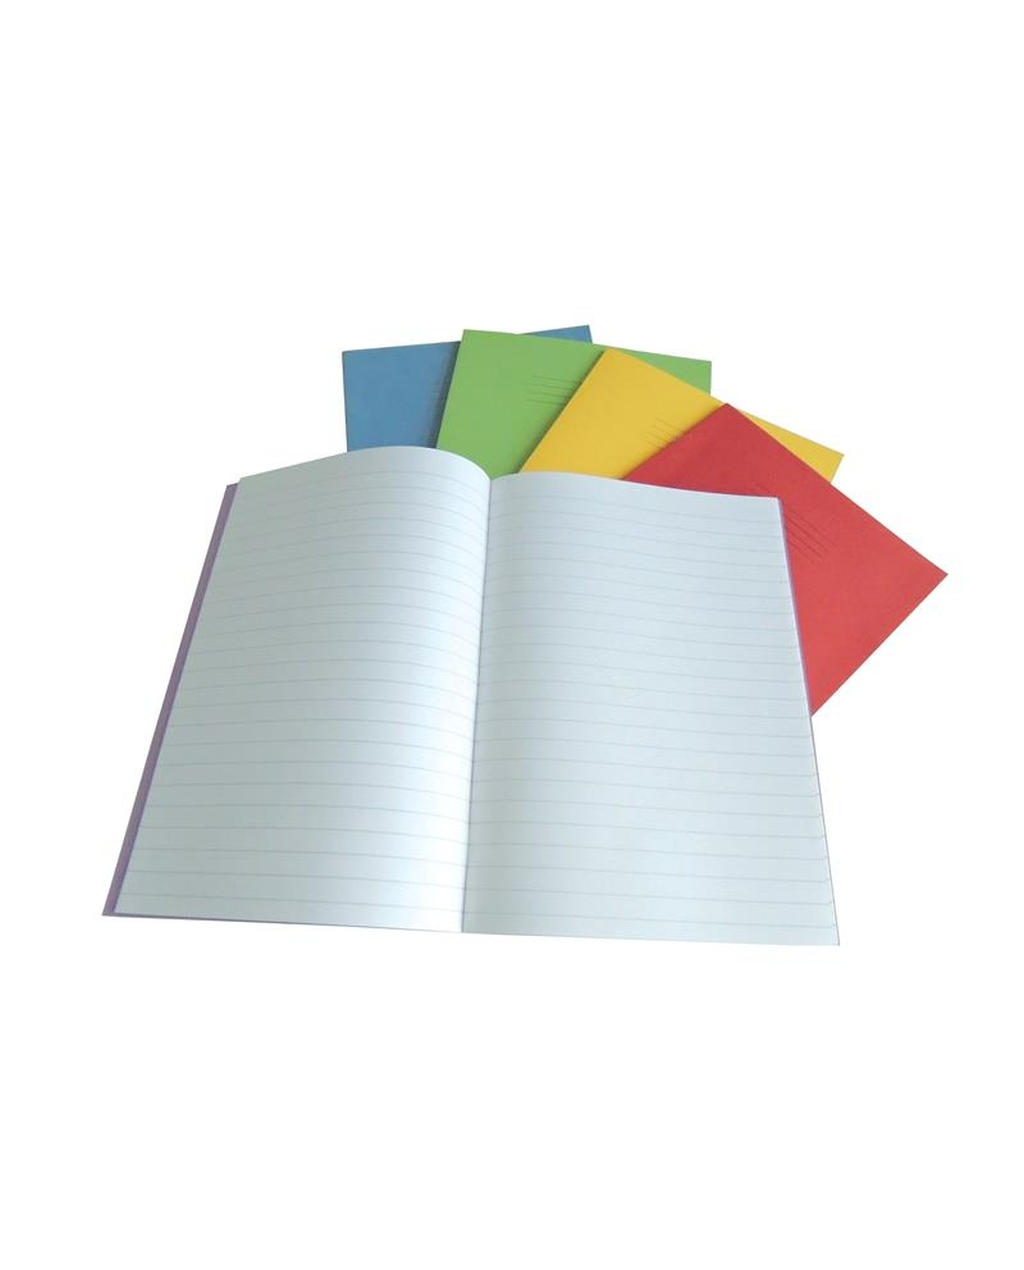 Exercise Book A4+ size (330 x 250mm) Yellow Cover 8mm Ruled 40 Pages